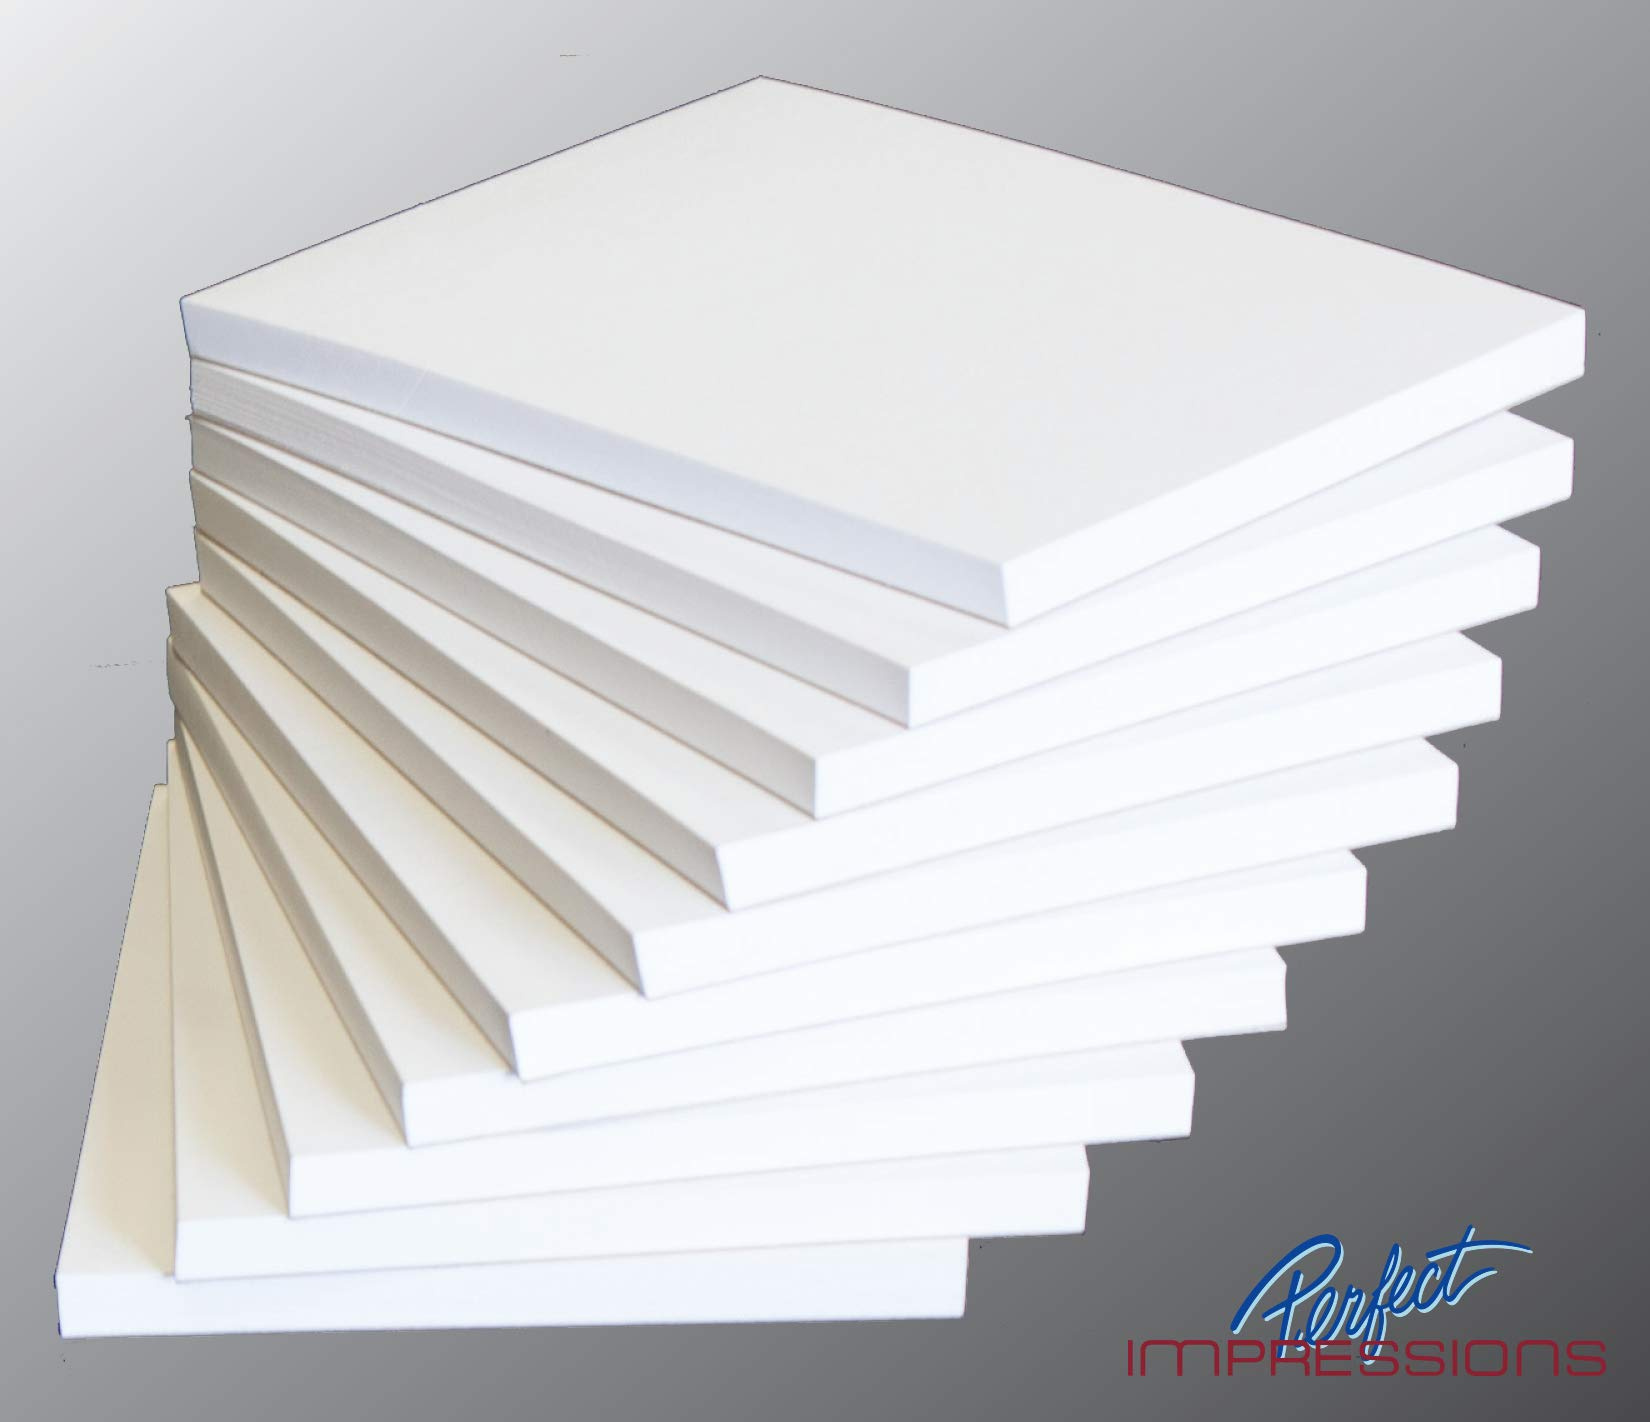 Note Pads - Memo Pads - Scratch Pads - Writing Pads Of 10 Packs With 50 Sheets Each! 8.5 x 5.5 inches